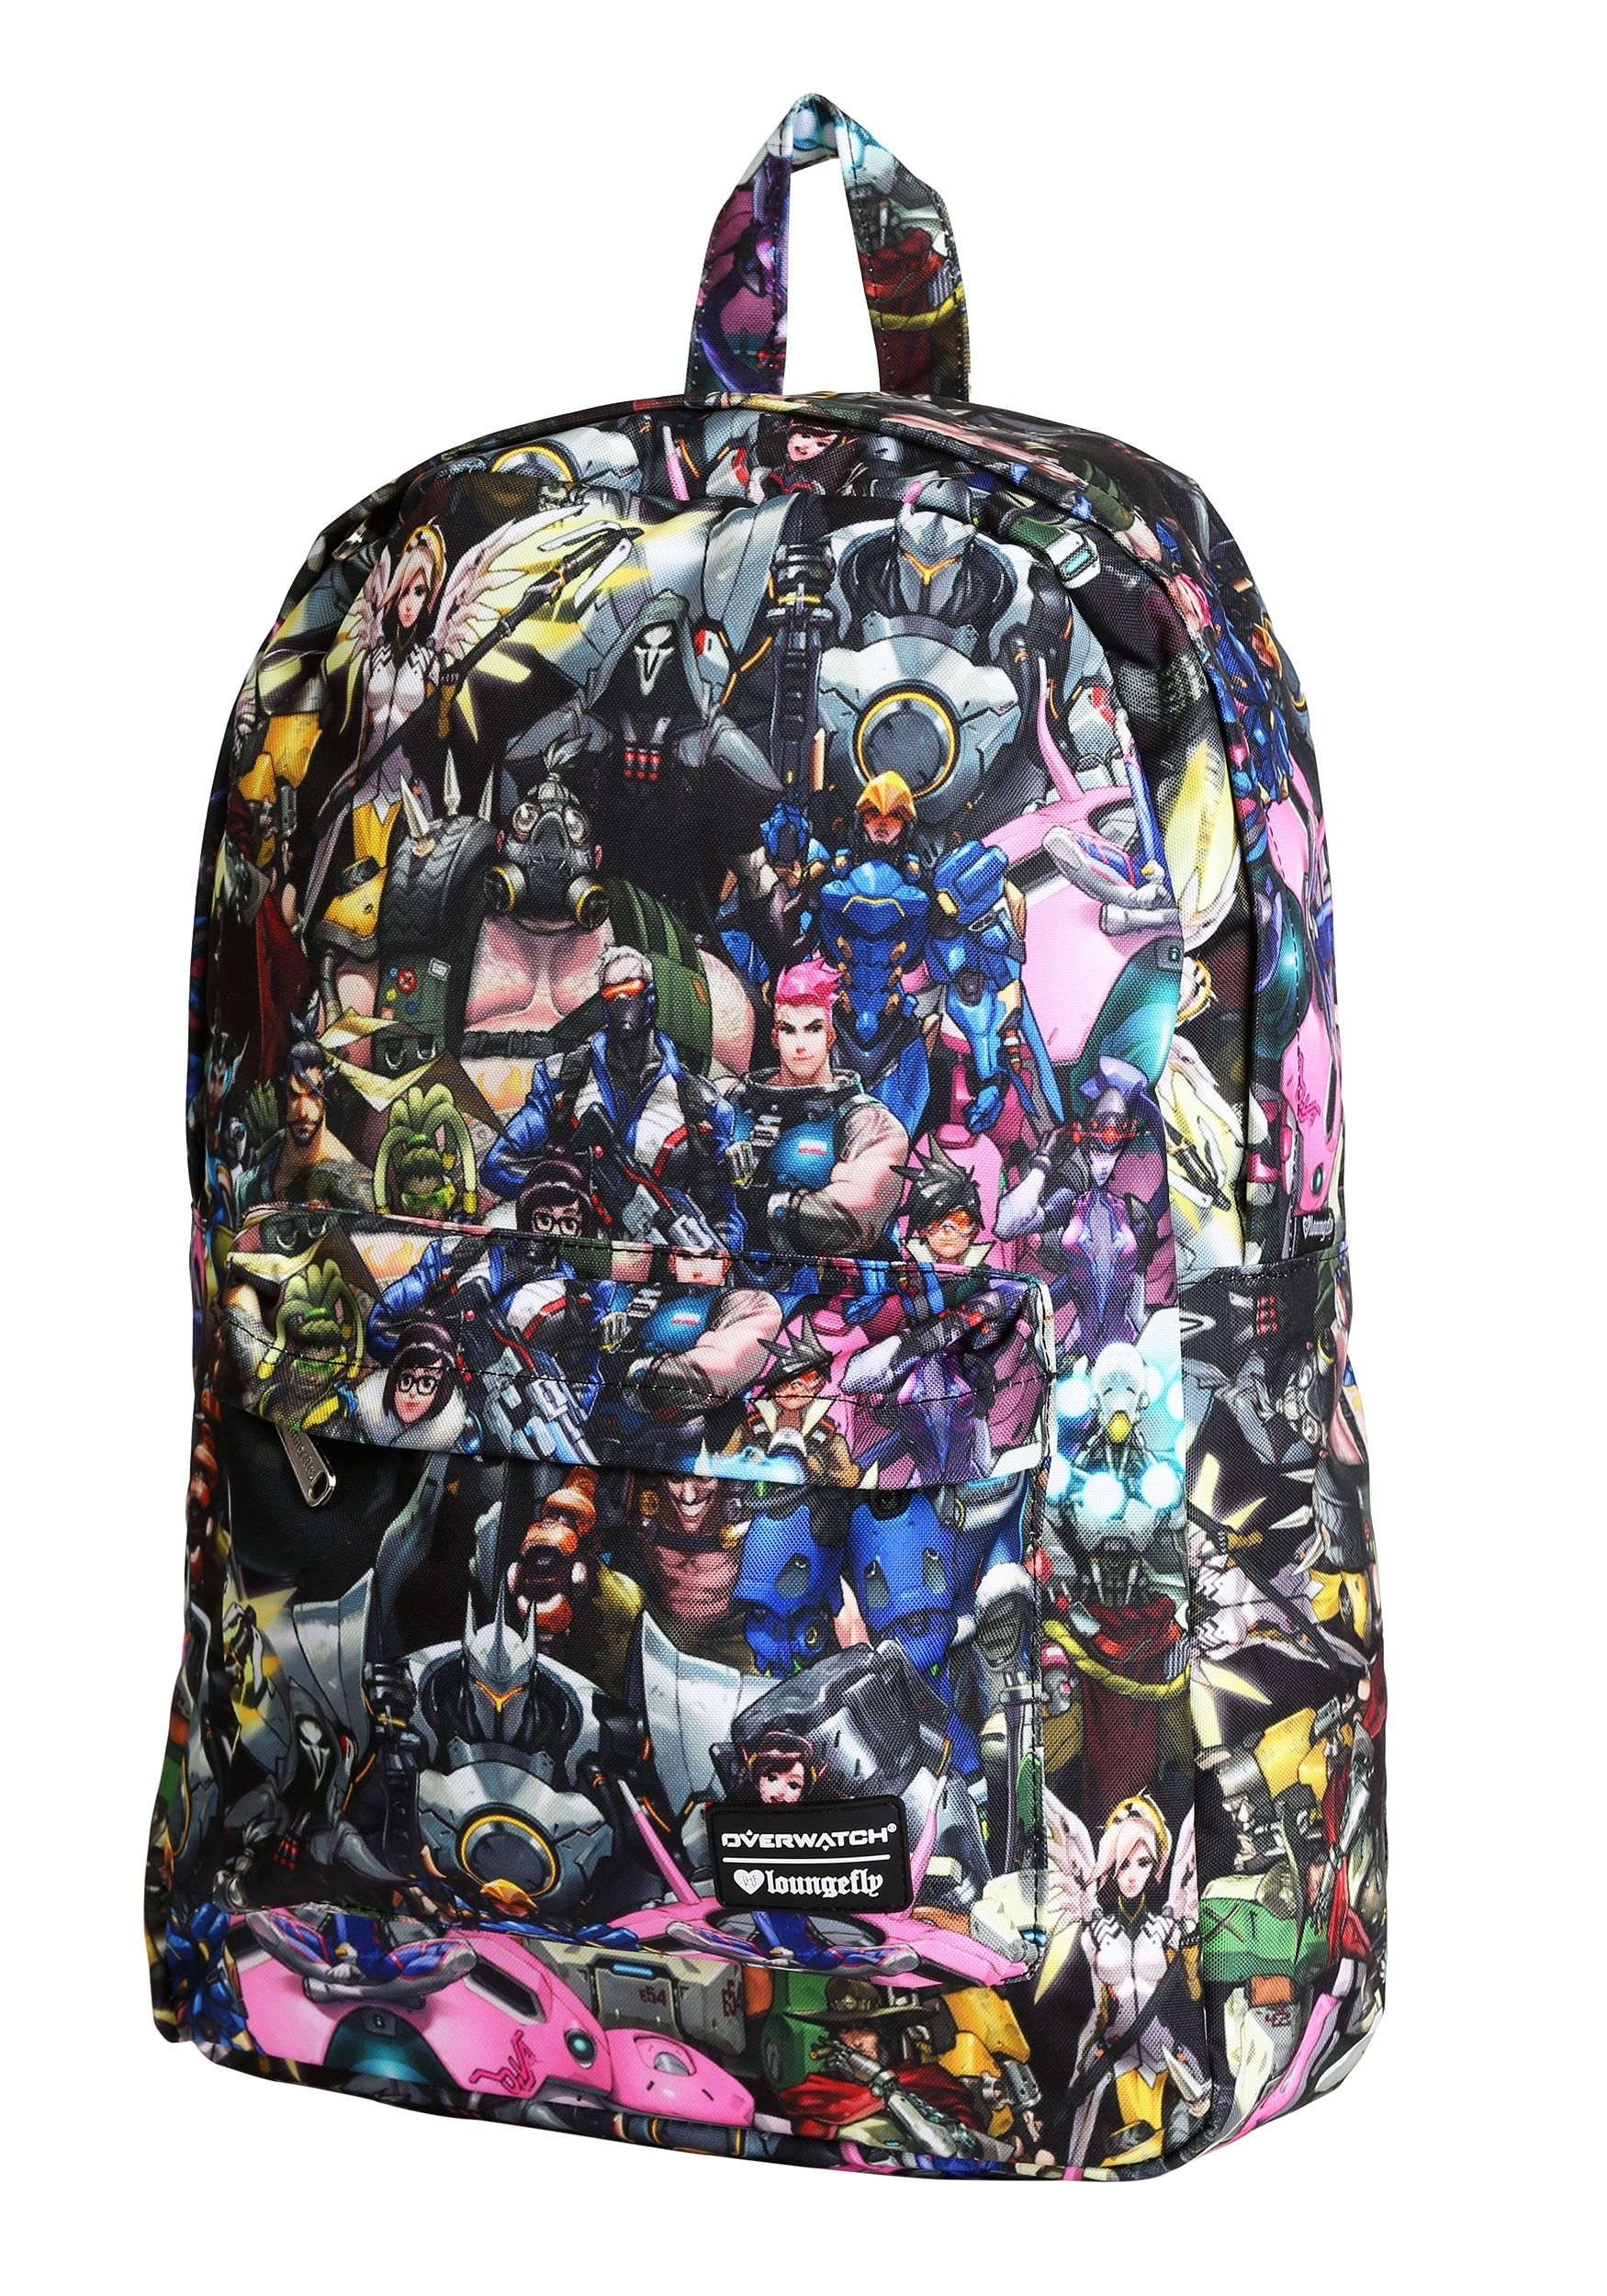 203f7707e24 Loungefly Overwatch All Over Print Characters Backpack